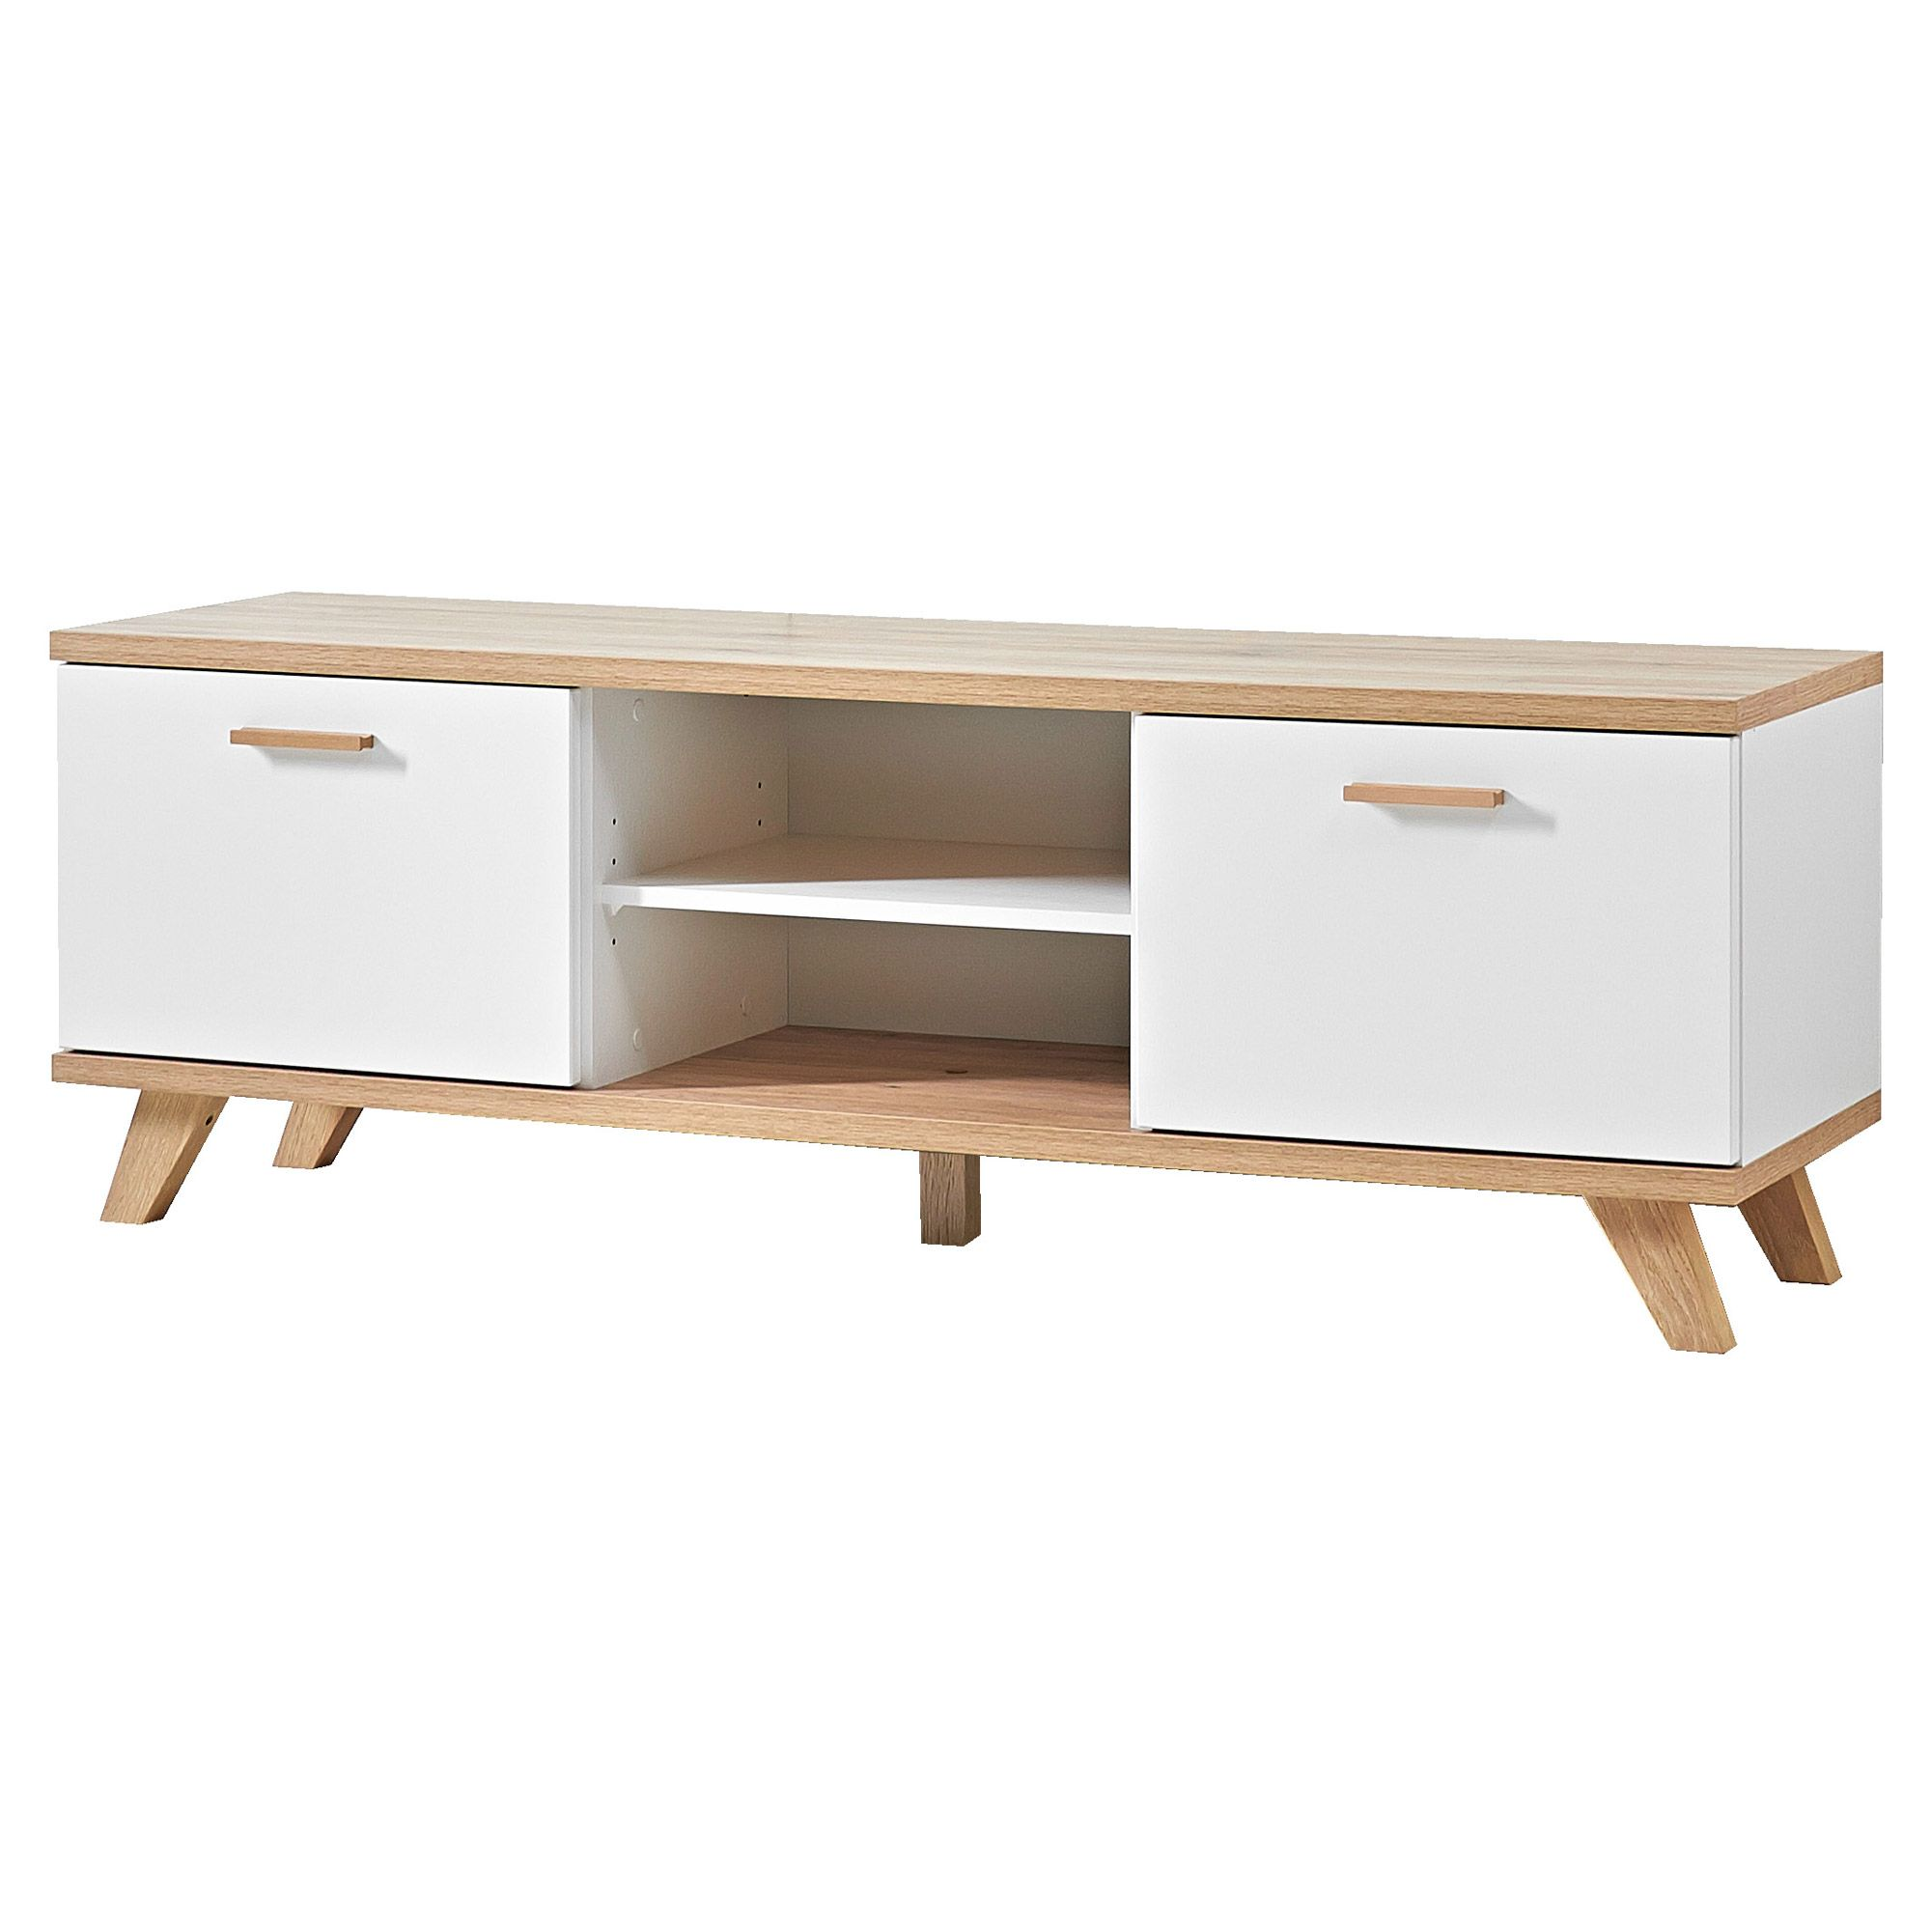 Meuble Tv Bas En Bois Pi Tement Ch Ne 2 Portes 2 Niches L144cm